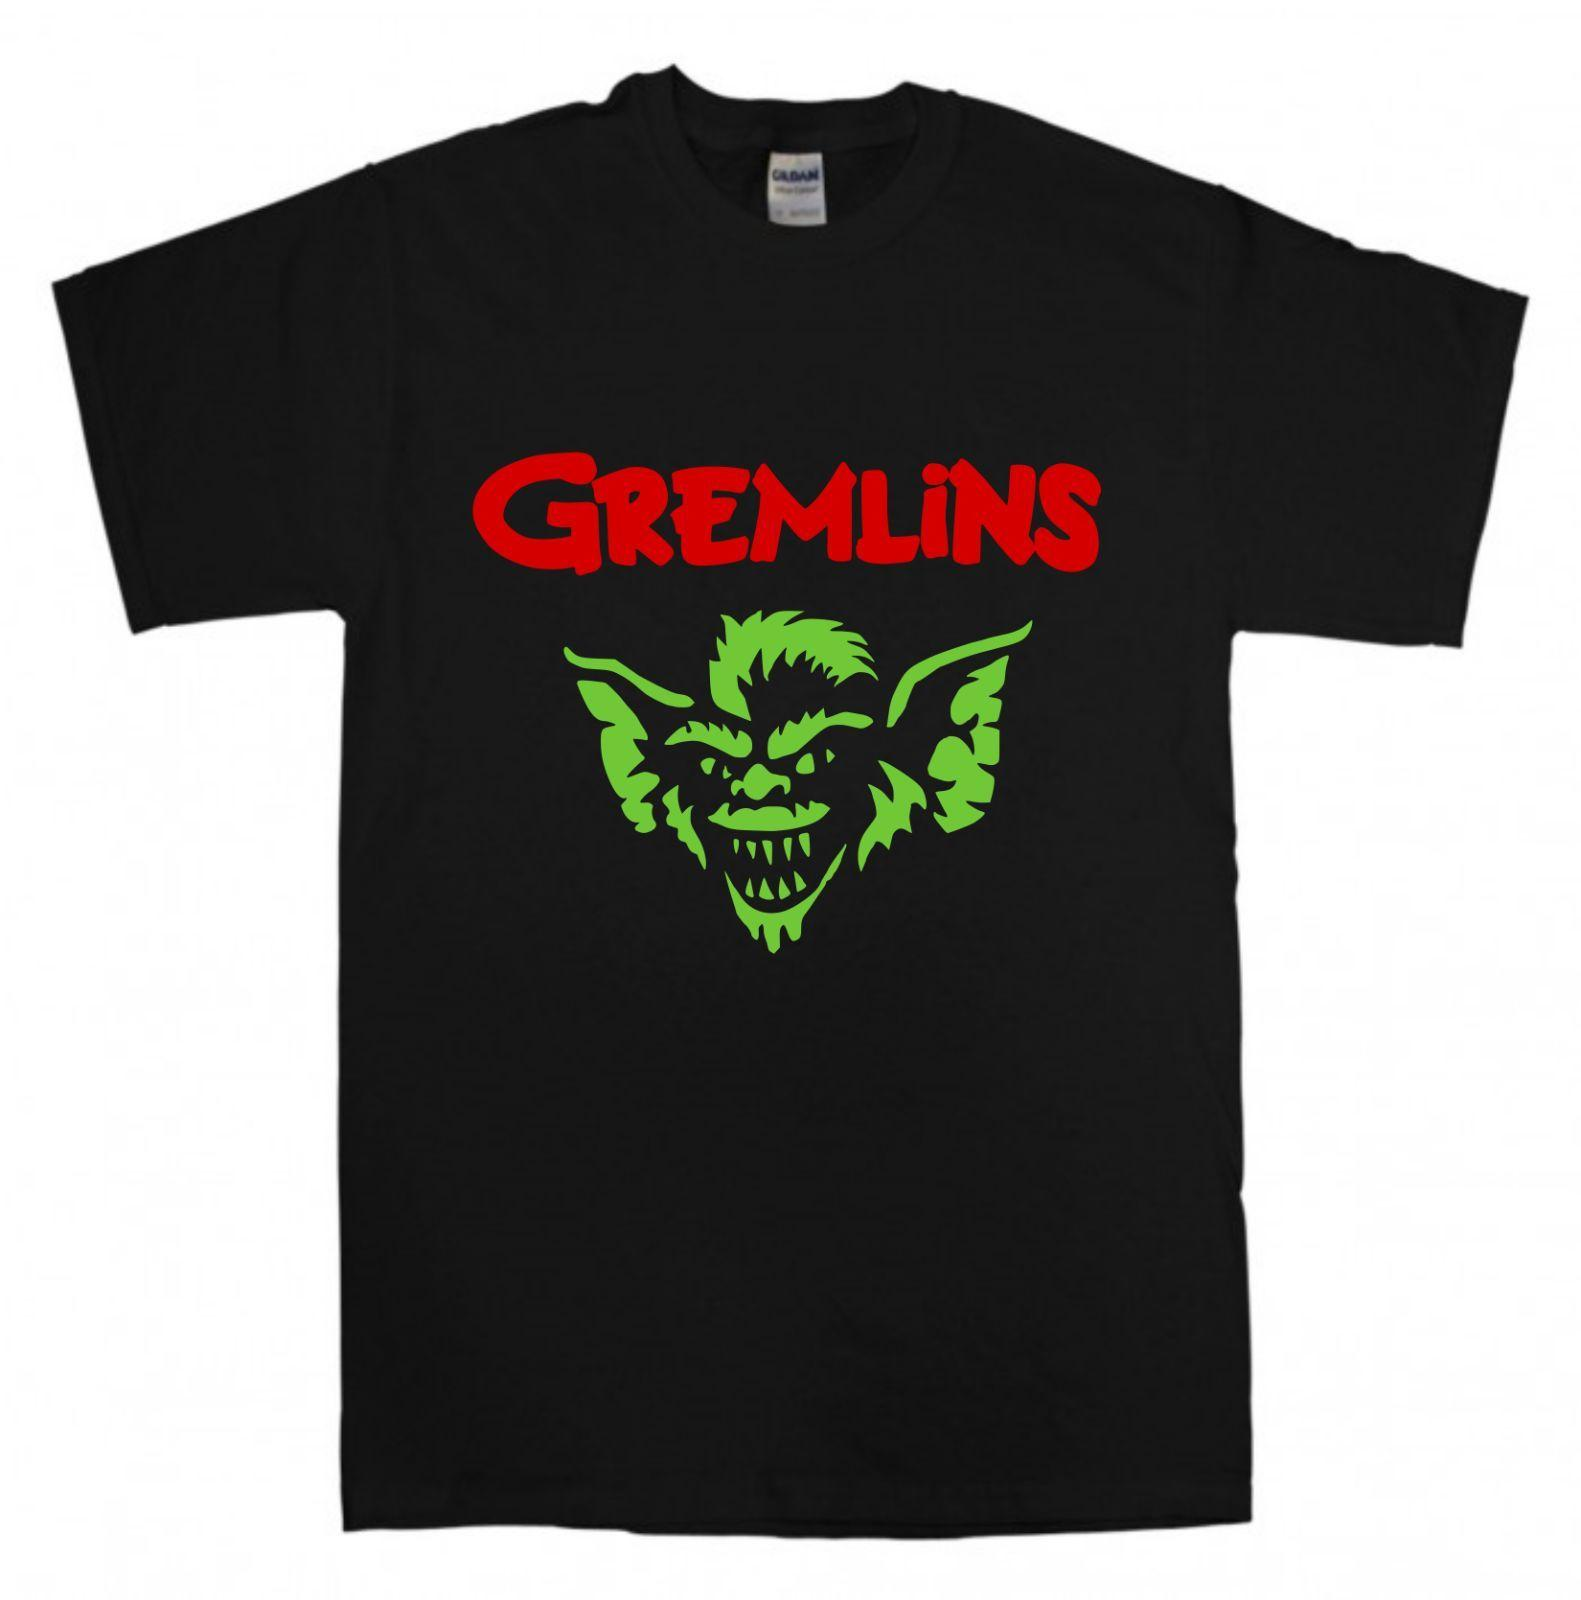 1a7818b7424 GREMLINS New Black T-shirt S-XXL Retro Vintage Cristmas Movie Gift Gizmo  Moqwai Trump Sweat Sporter T-shirt Online with  19.15 Piece on  Qz1409088365 s Store ...